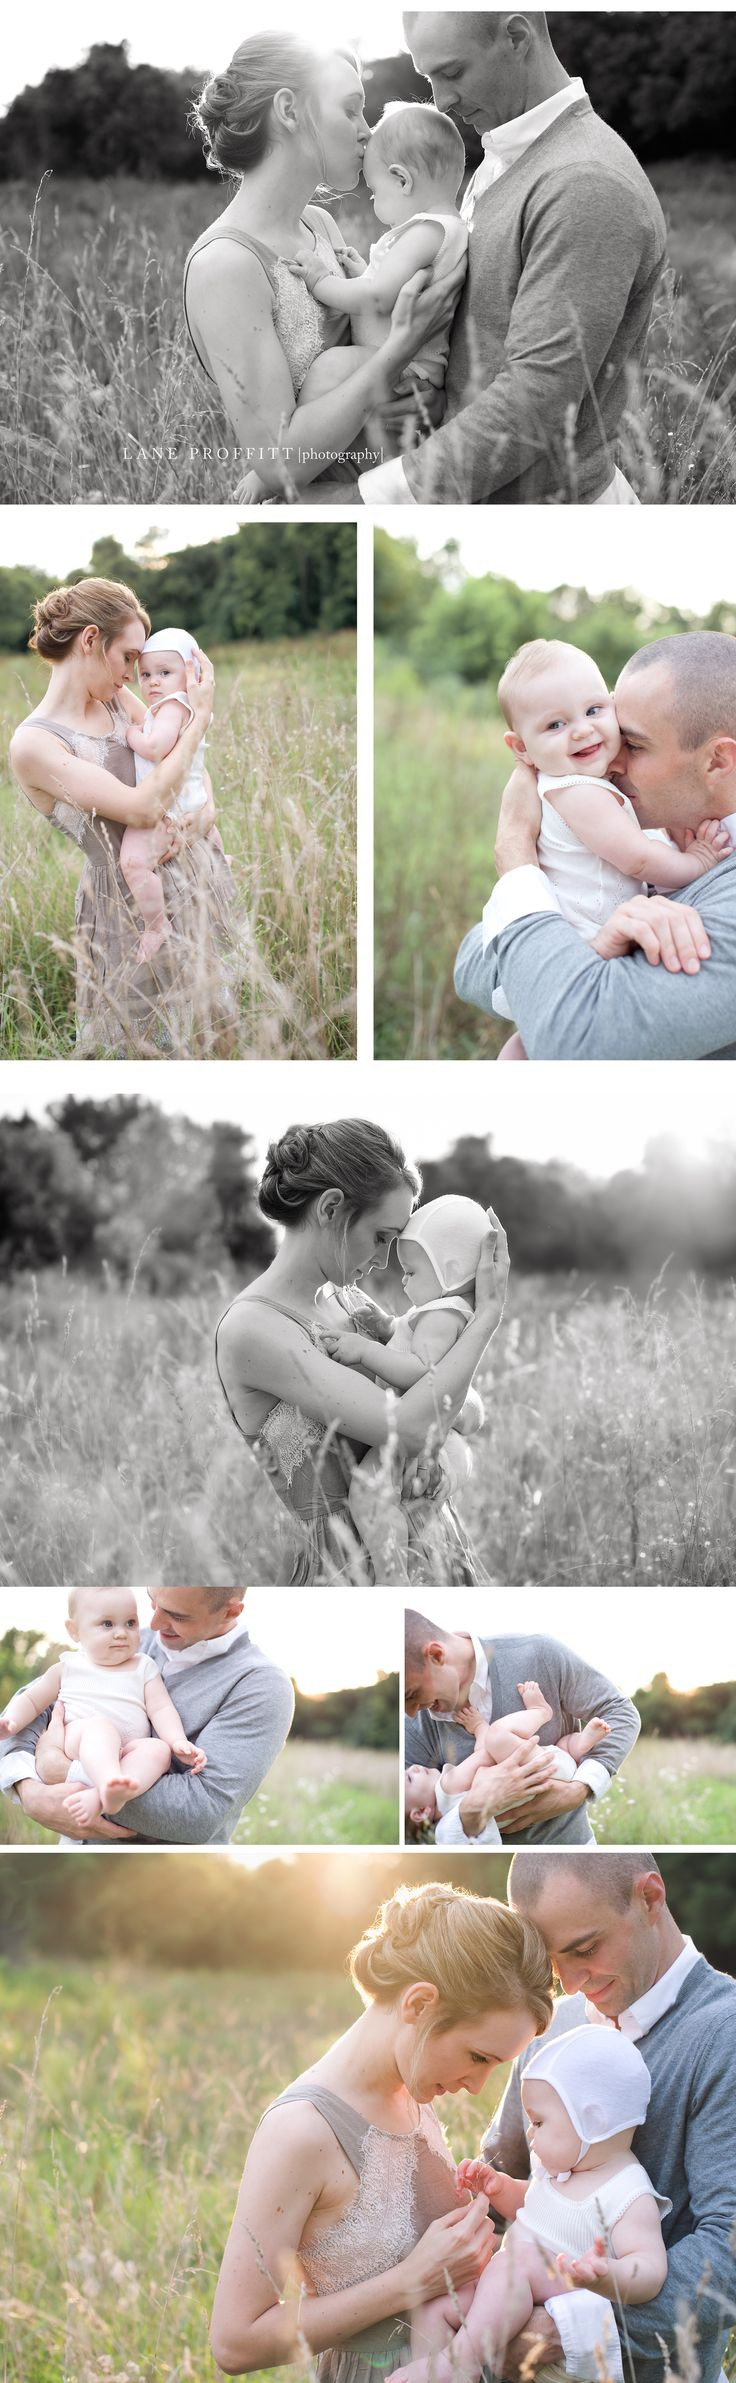 Baby Photography | 6 months |  Nashville TN copyright Lane Proffitt Photography